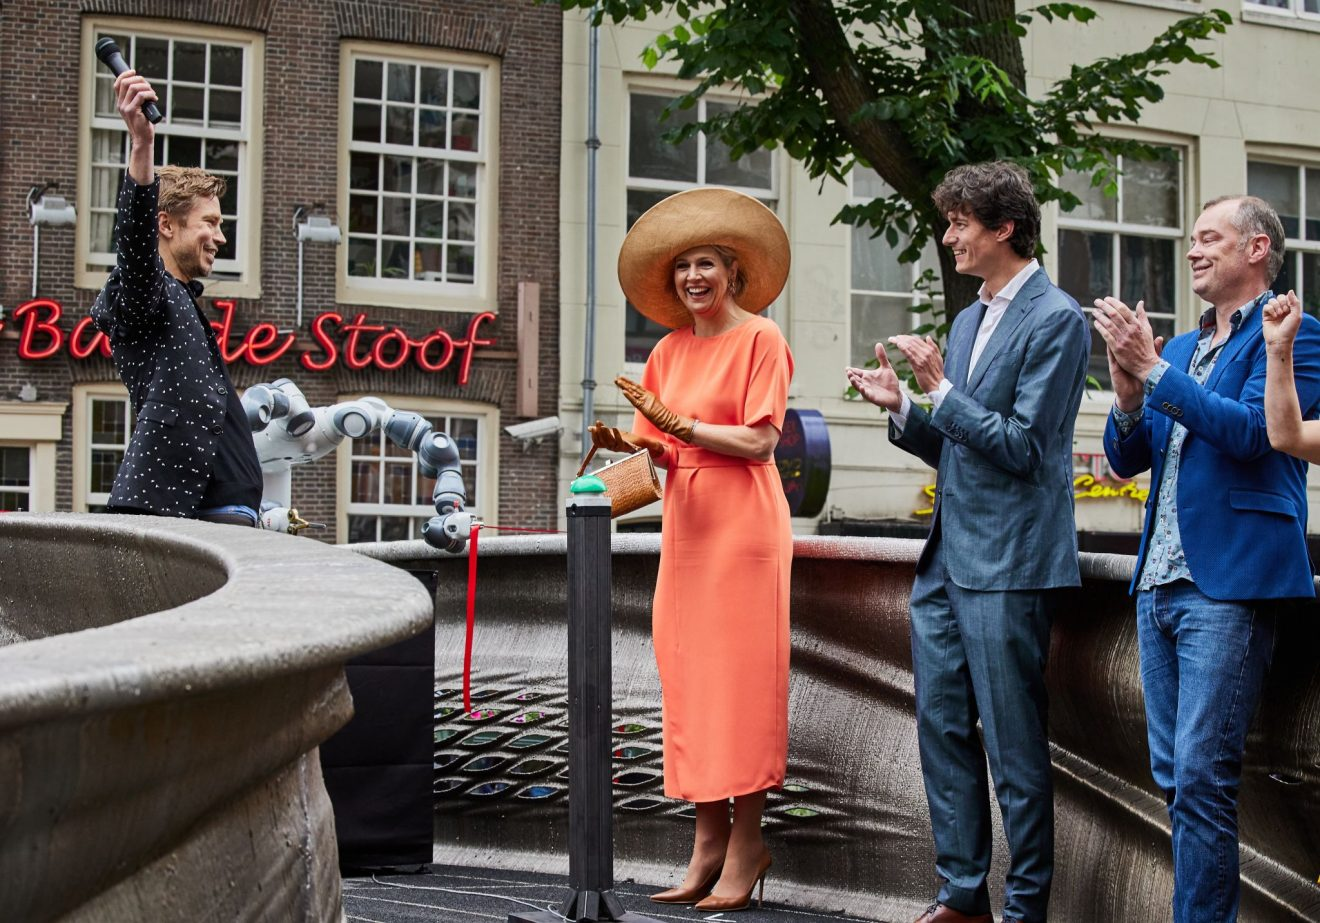 World's first 3D-printed steel footbridge unveiled by Queen Máxima in Amsterdam